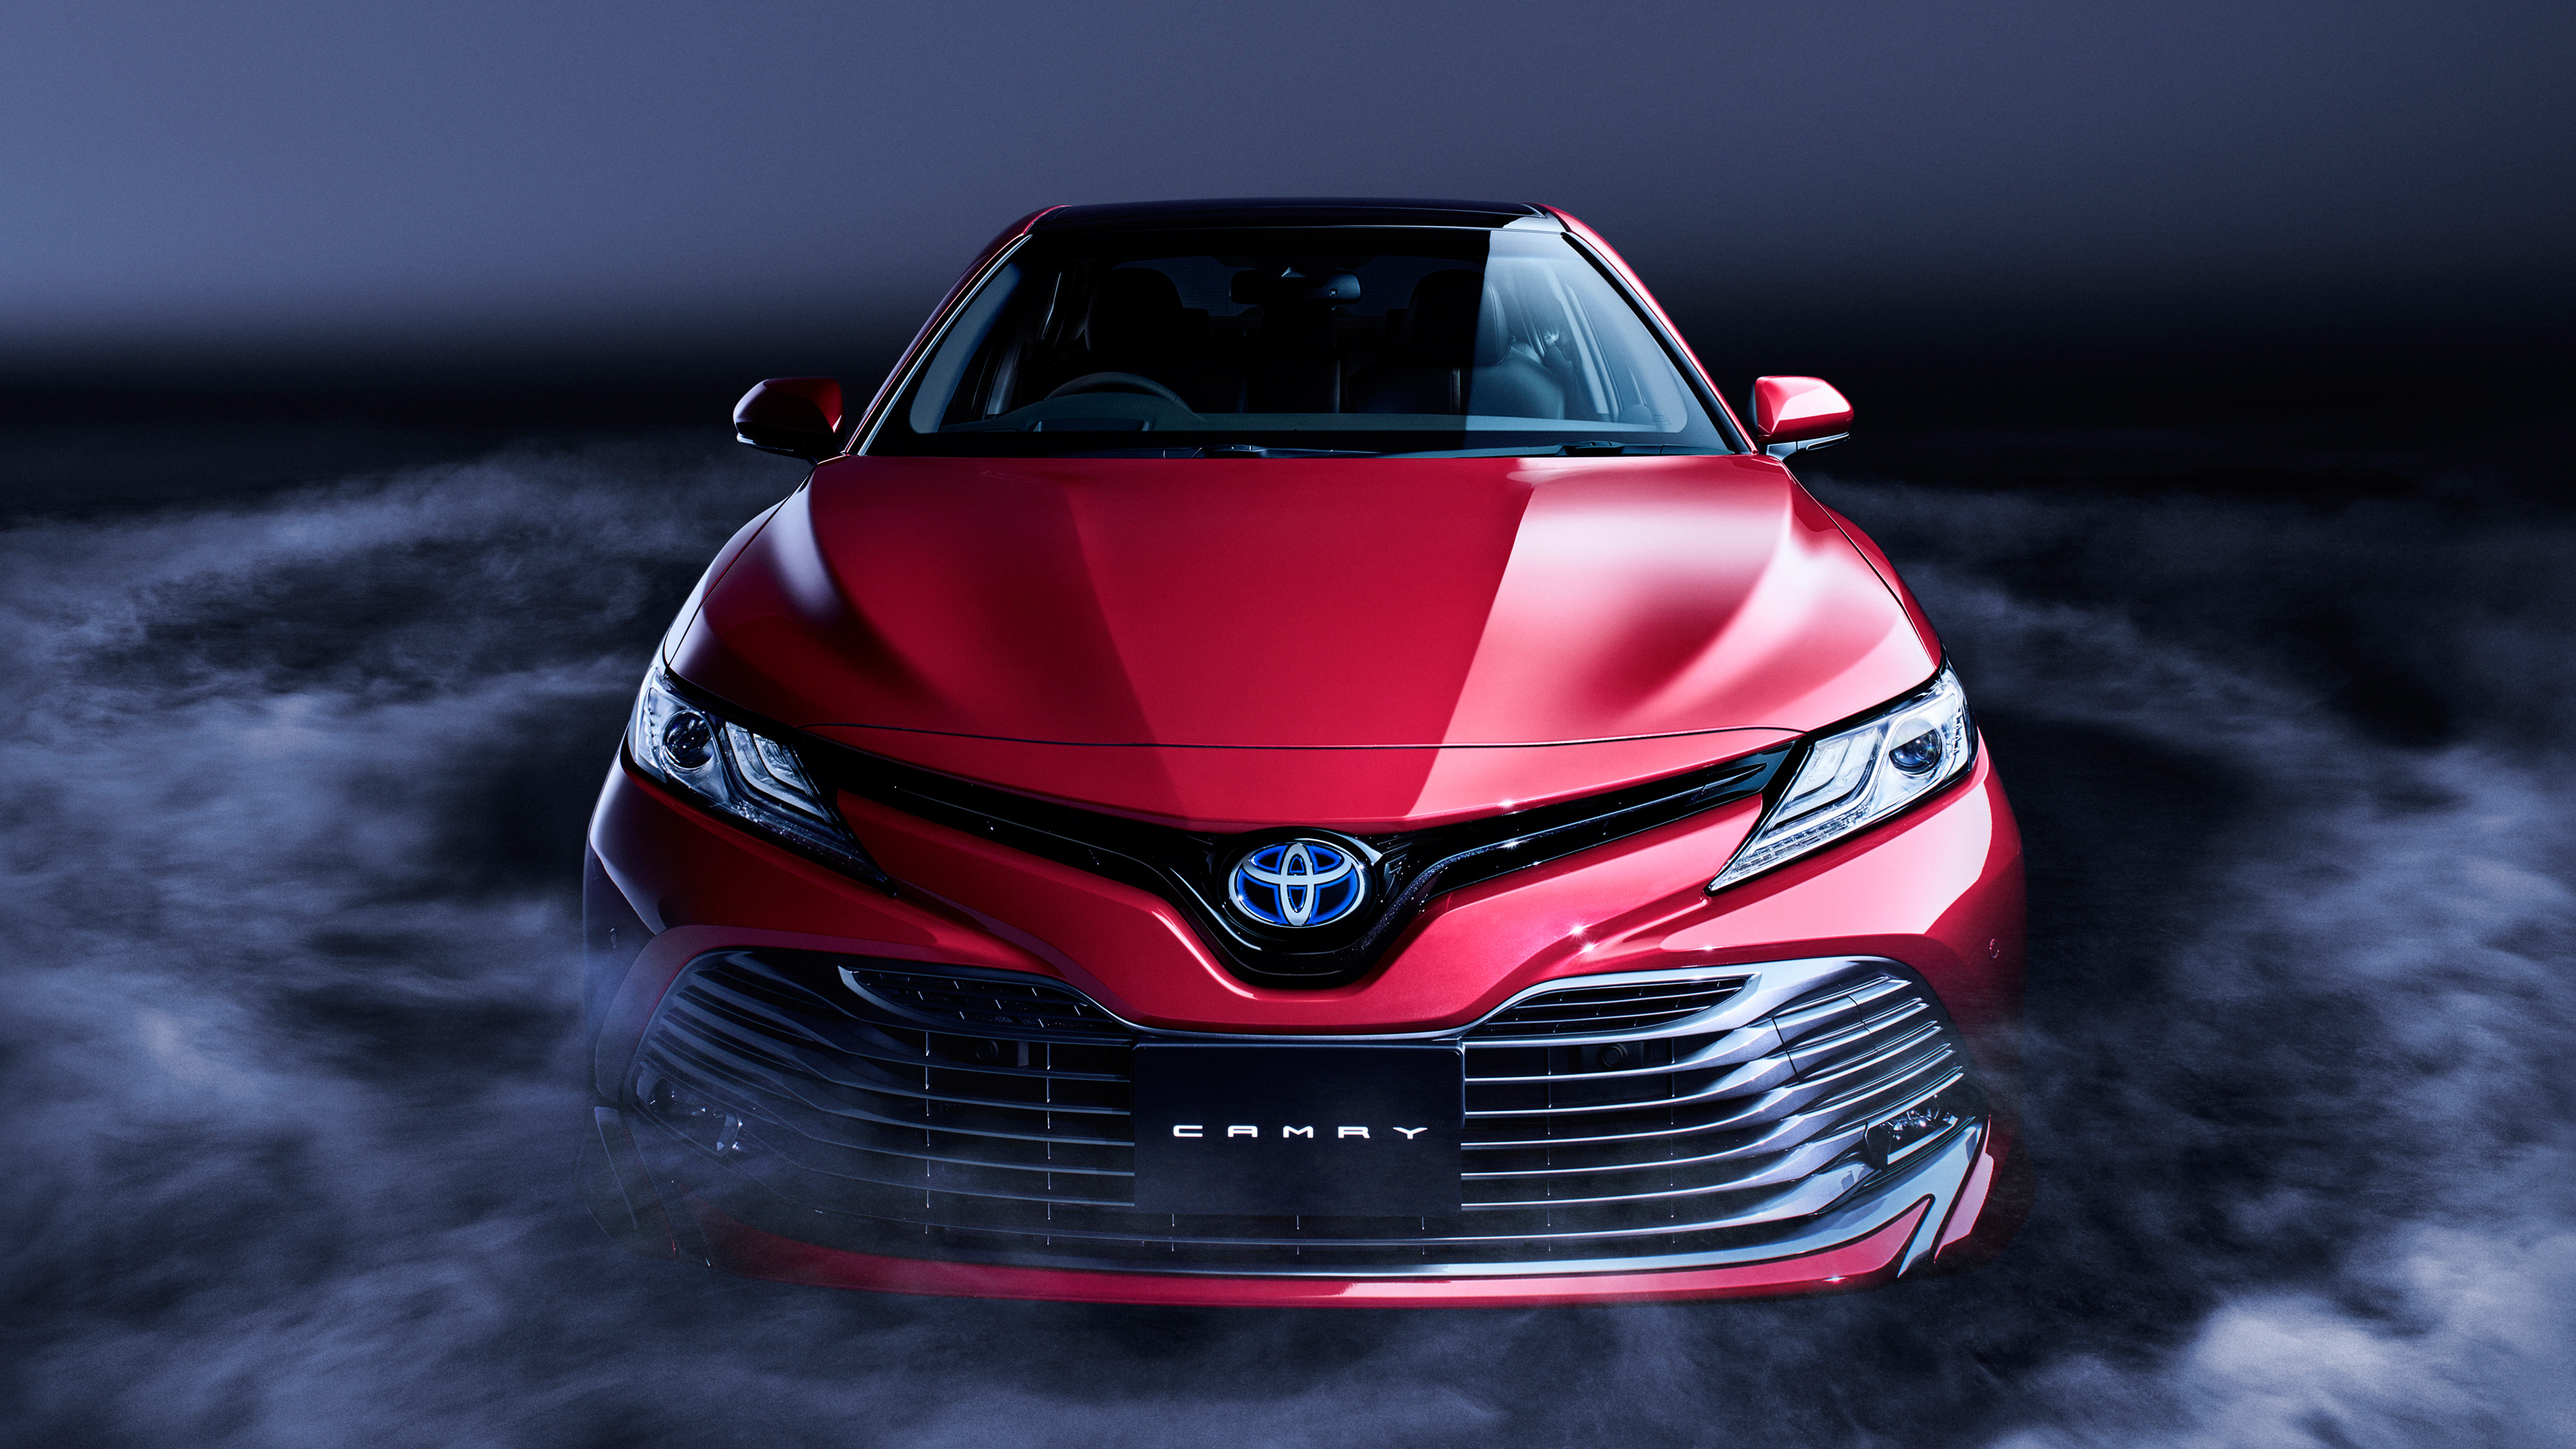 Toyota Camry 2018 4k, HD Cars, 4k Wallpapers, Images, Backgrounds, Photos and Pictures